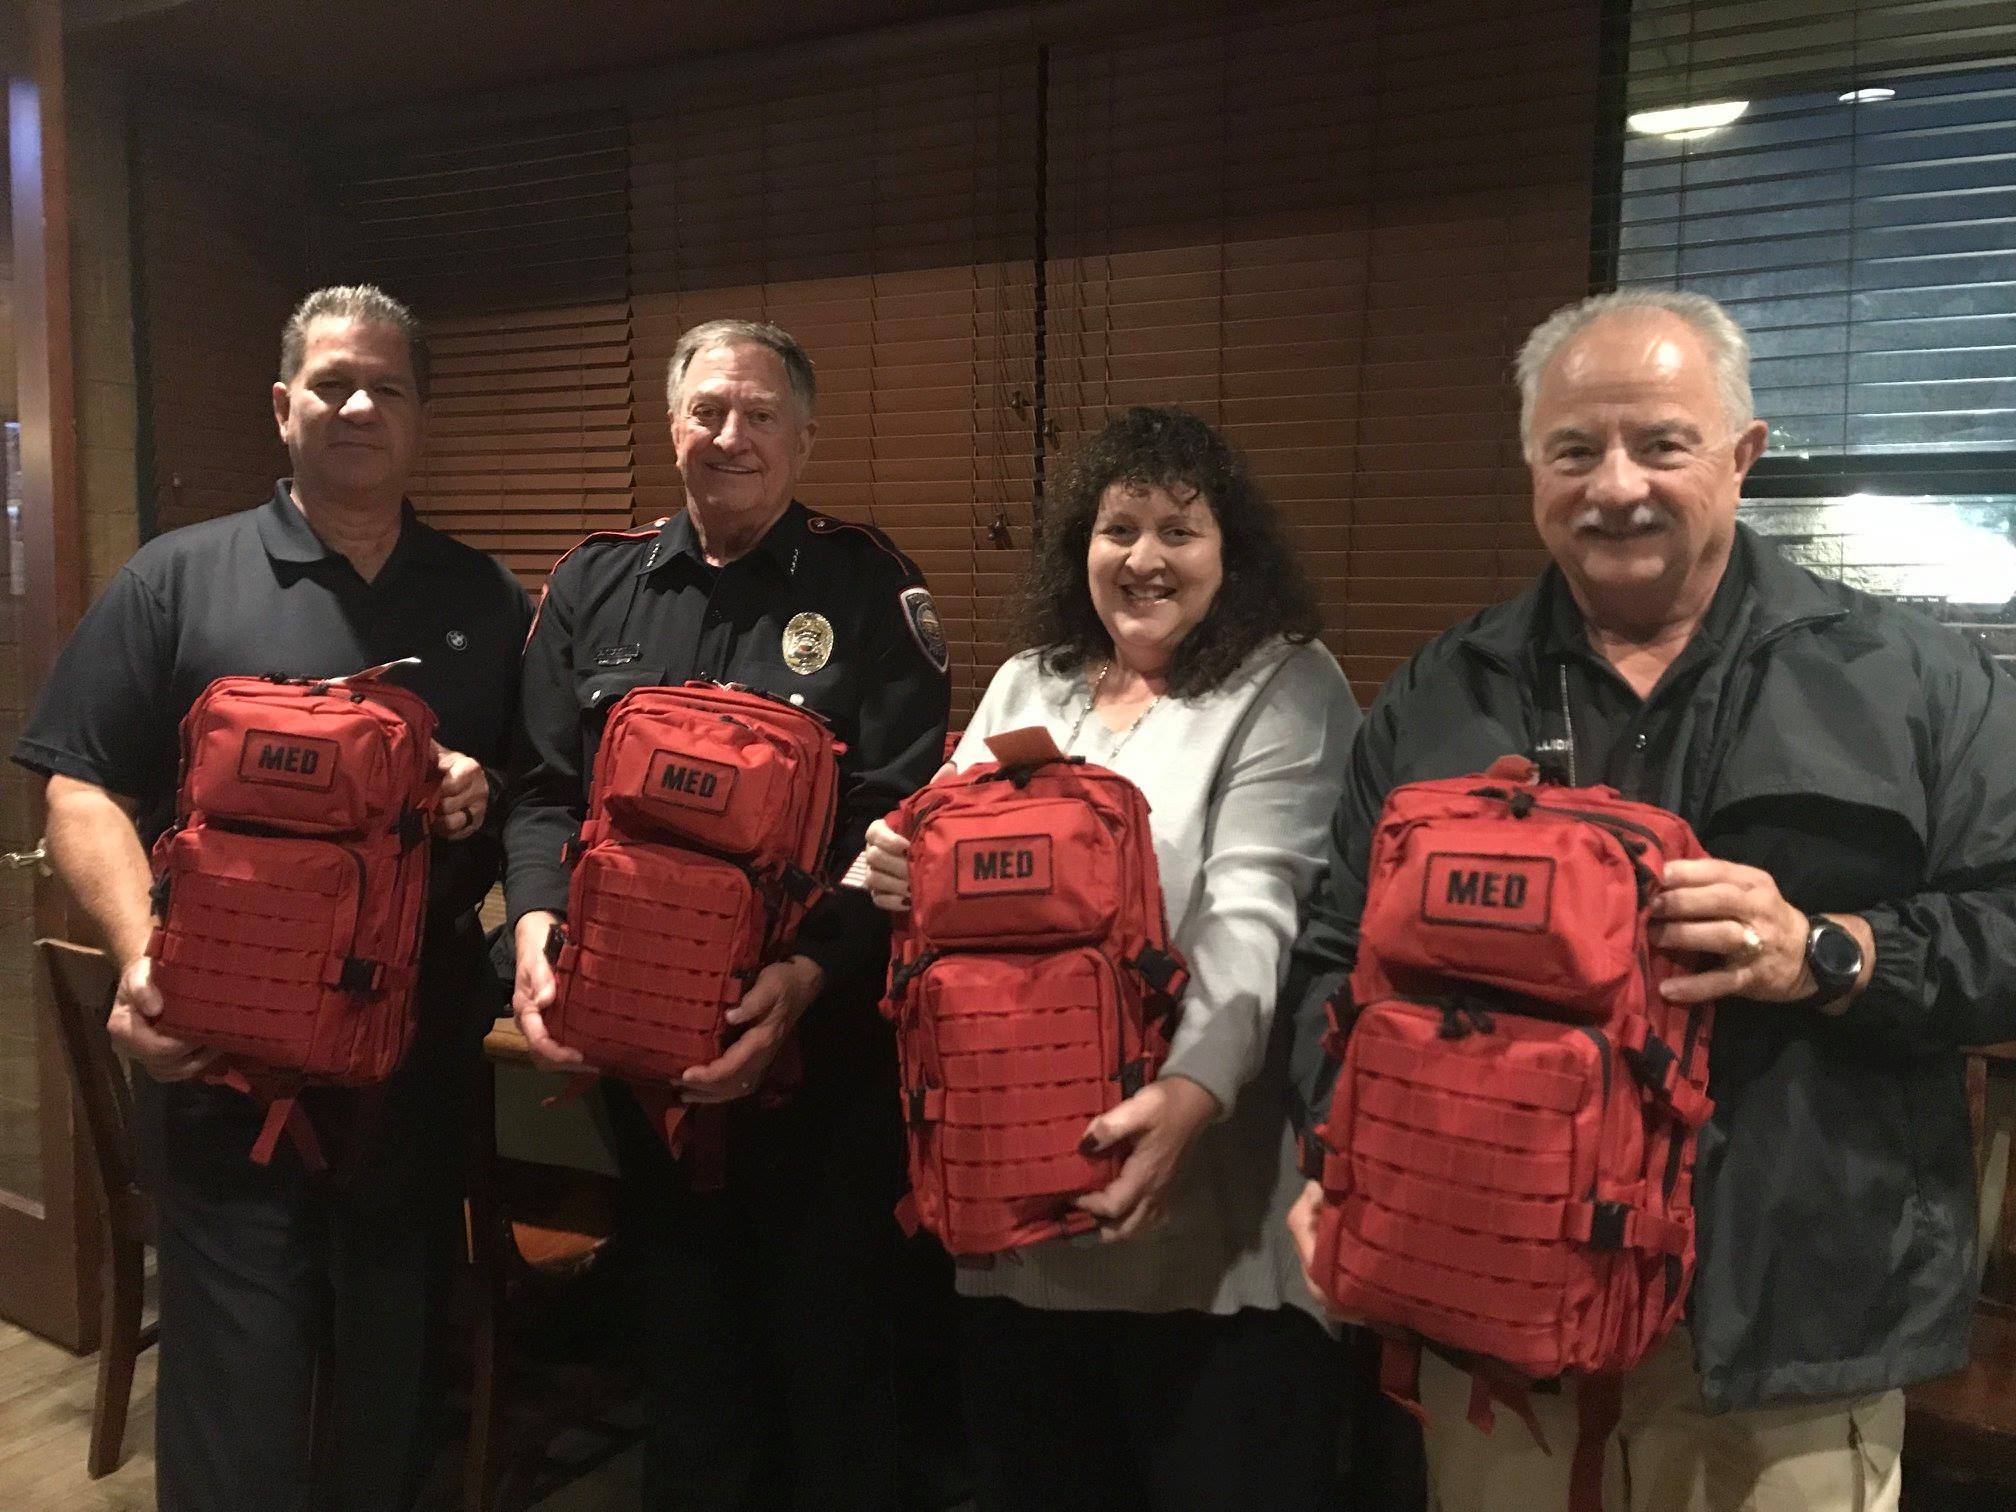 TOMBALL POLICE RECEIVE NEW EMS TRAUMA BAGS – Montgomery